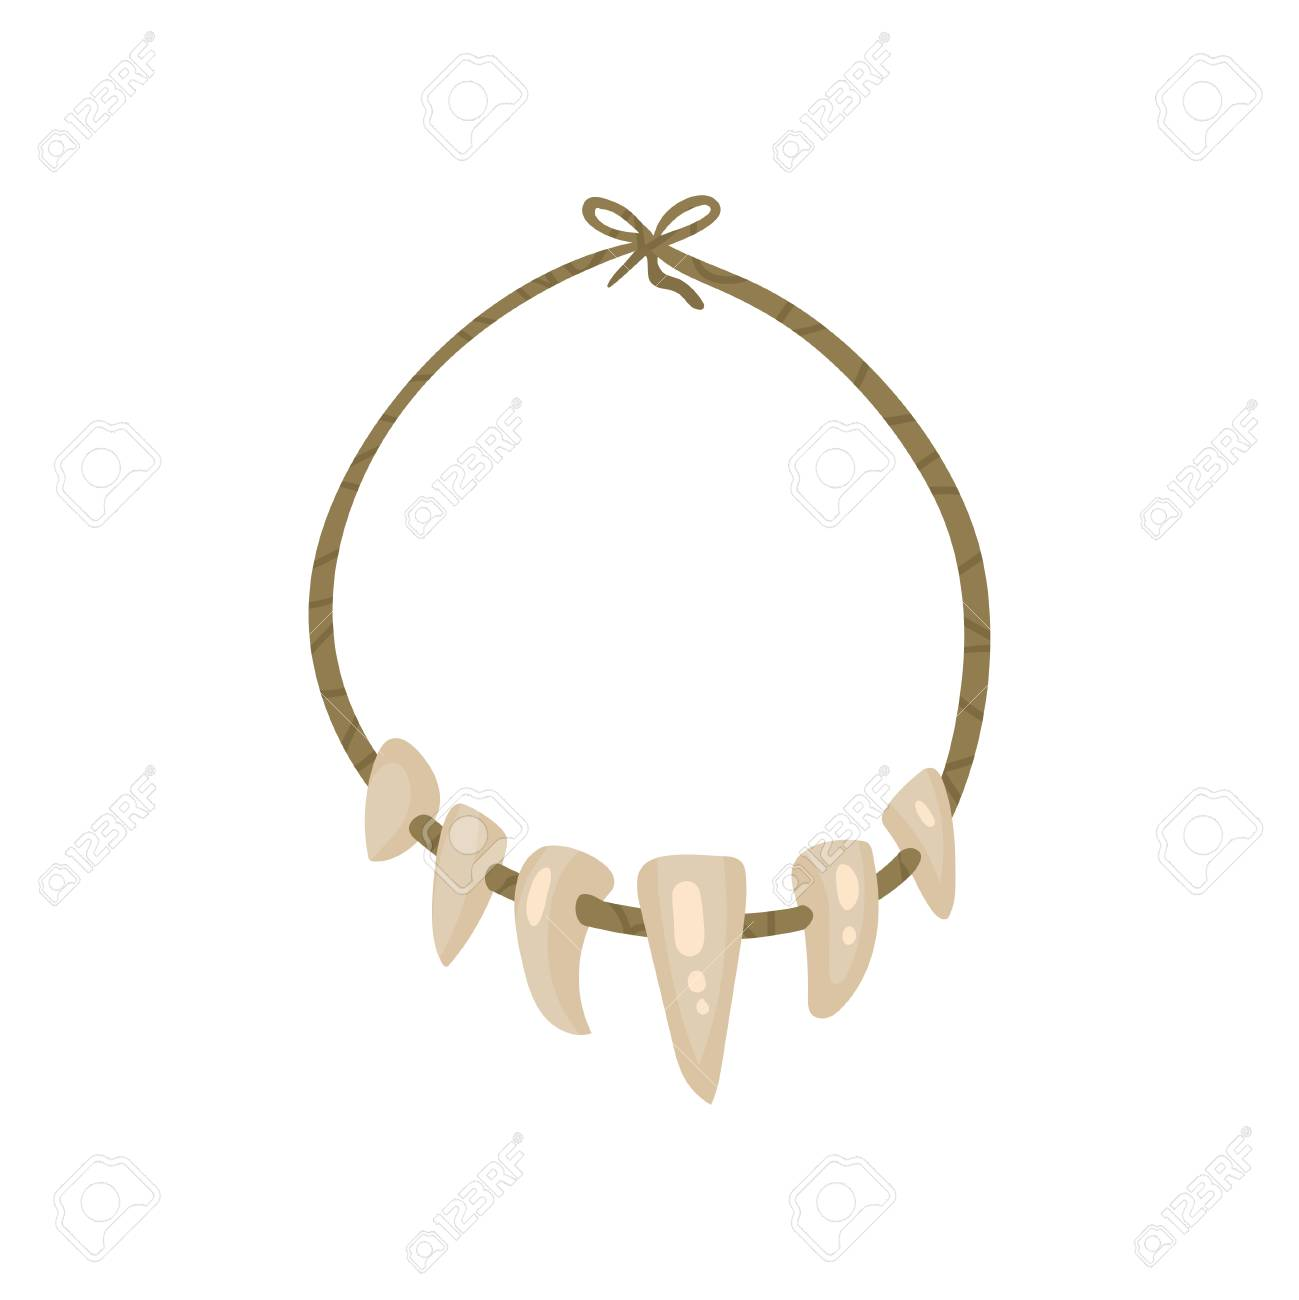 Necklace with Teeth, stone age symbol vector Illustration isolated on a white background. - 111634720